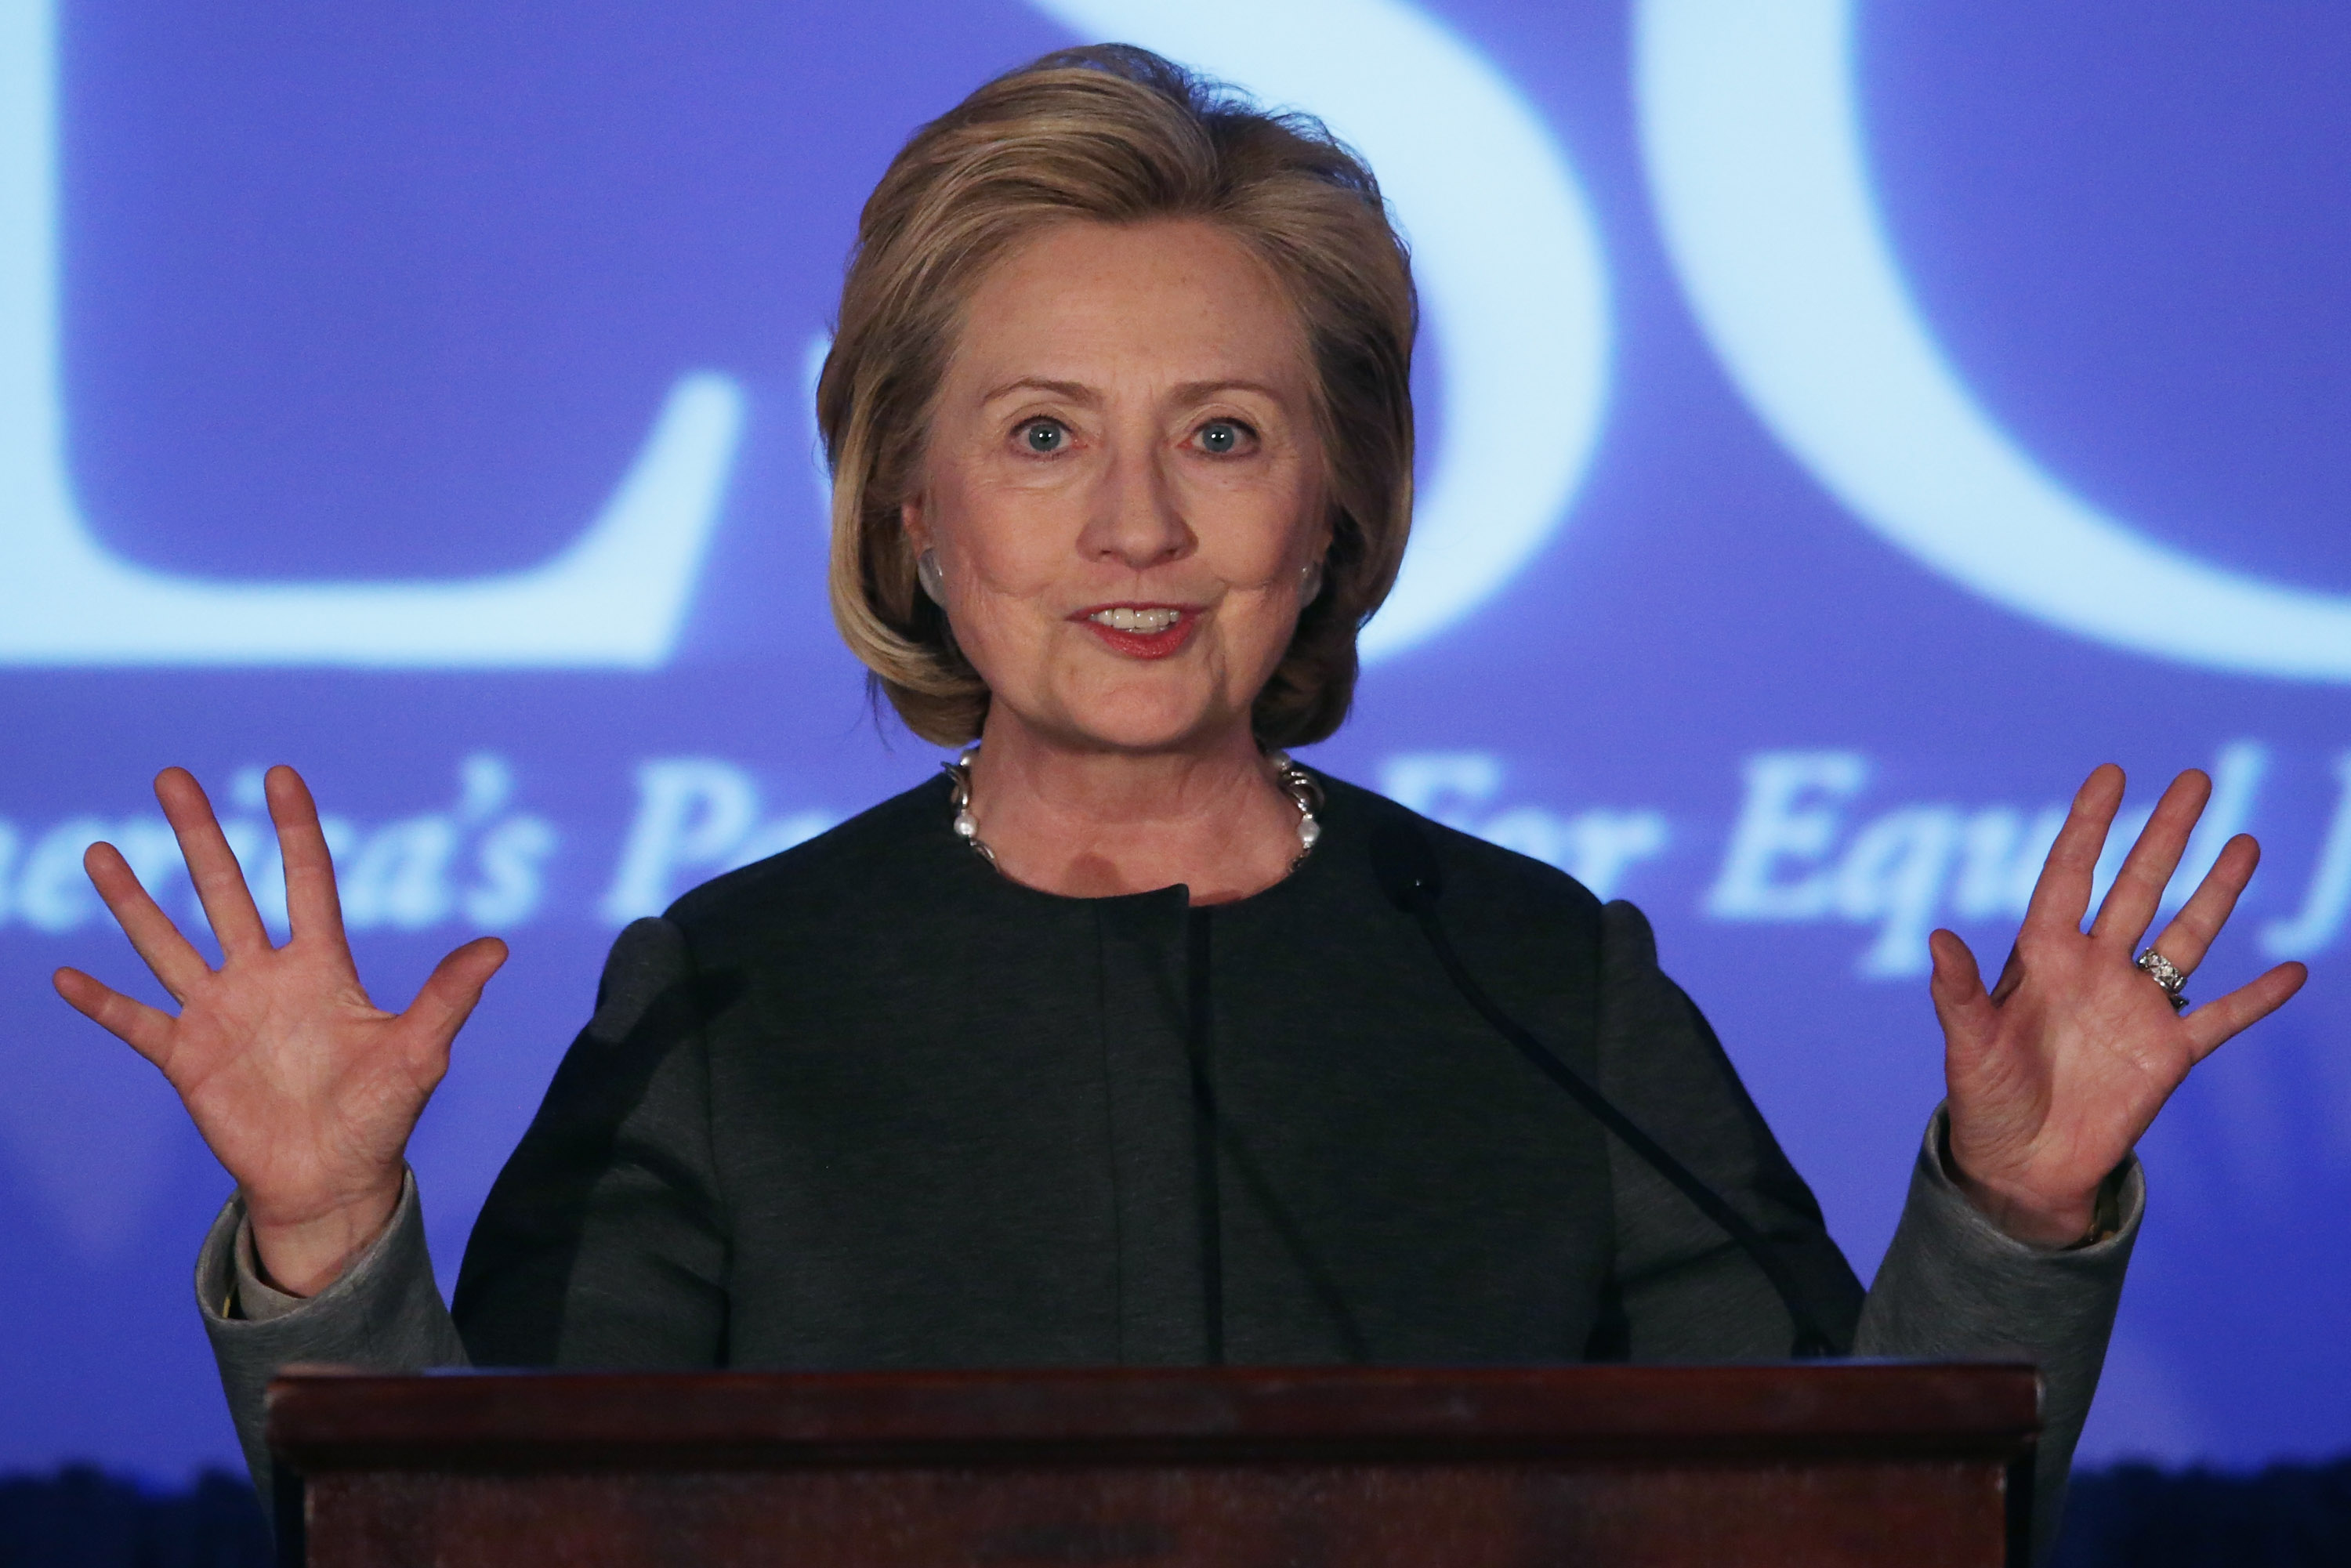 Hillary Clinton has ruled out a second US presidential run in 2020.